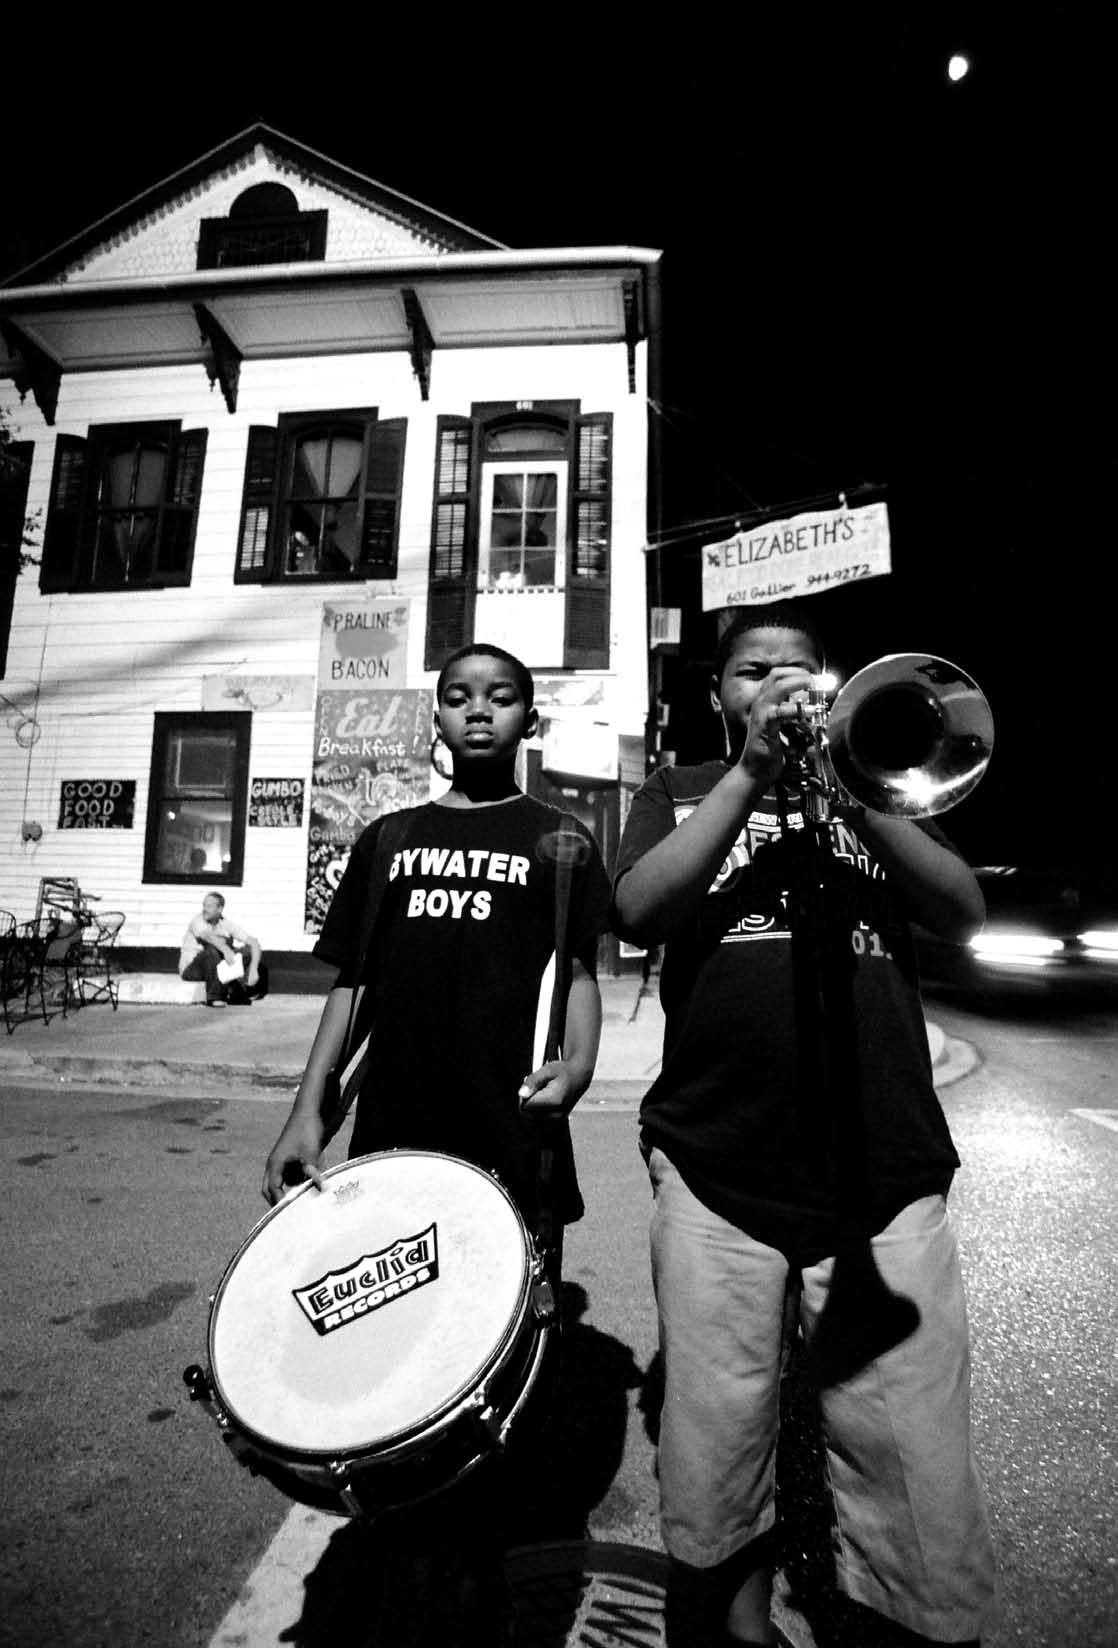 The Bywater Boys -- Photo by Dan Fox